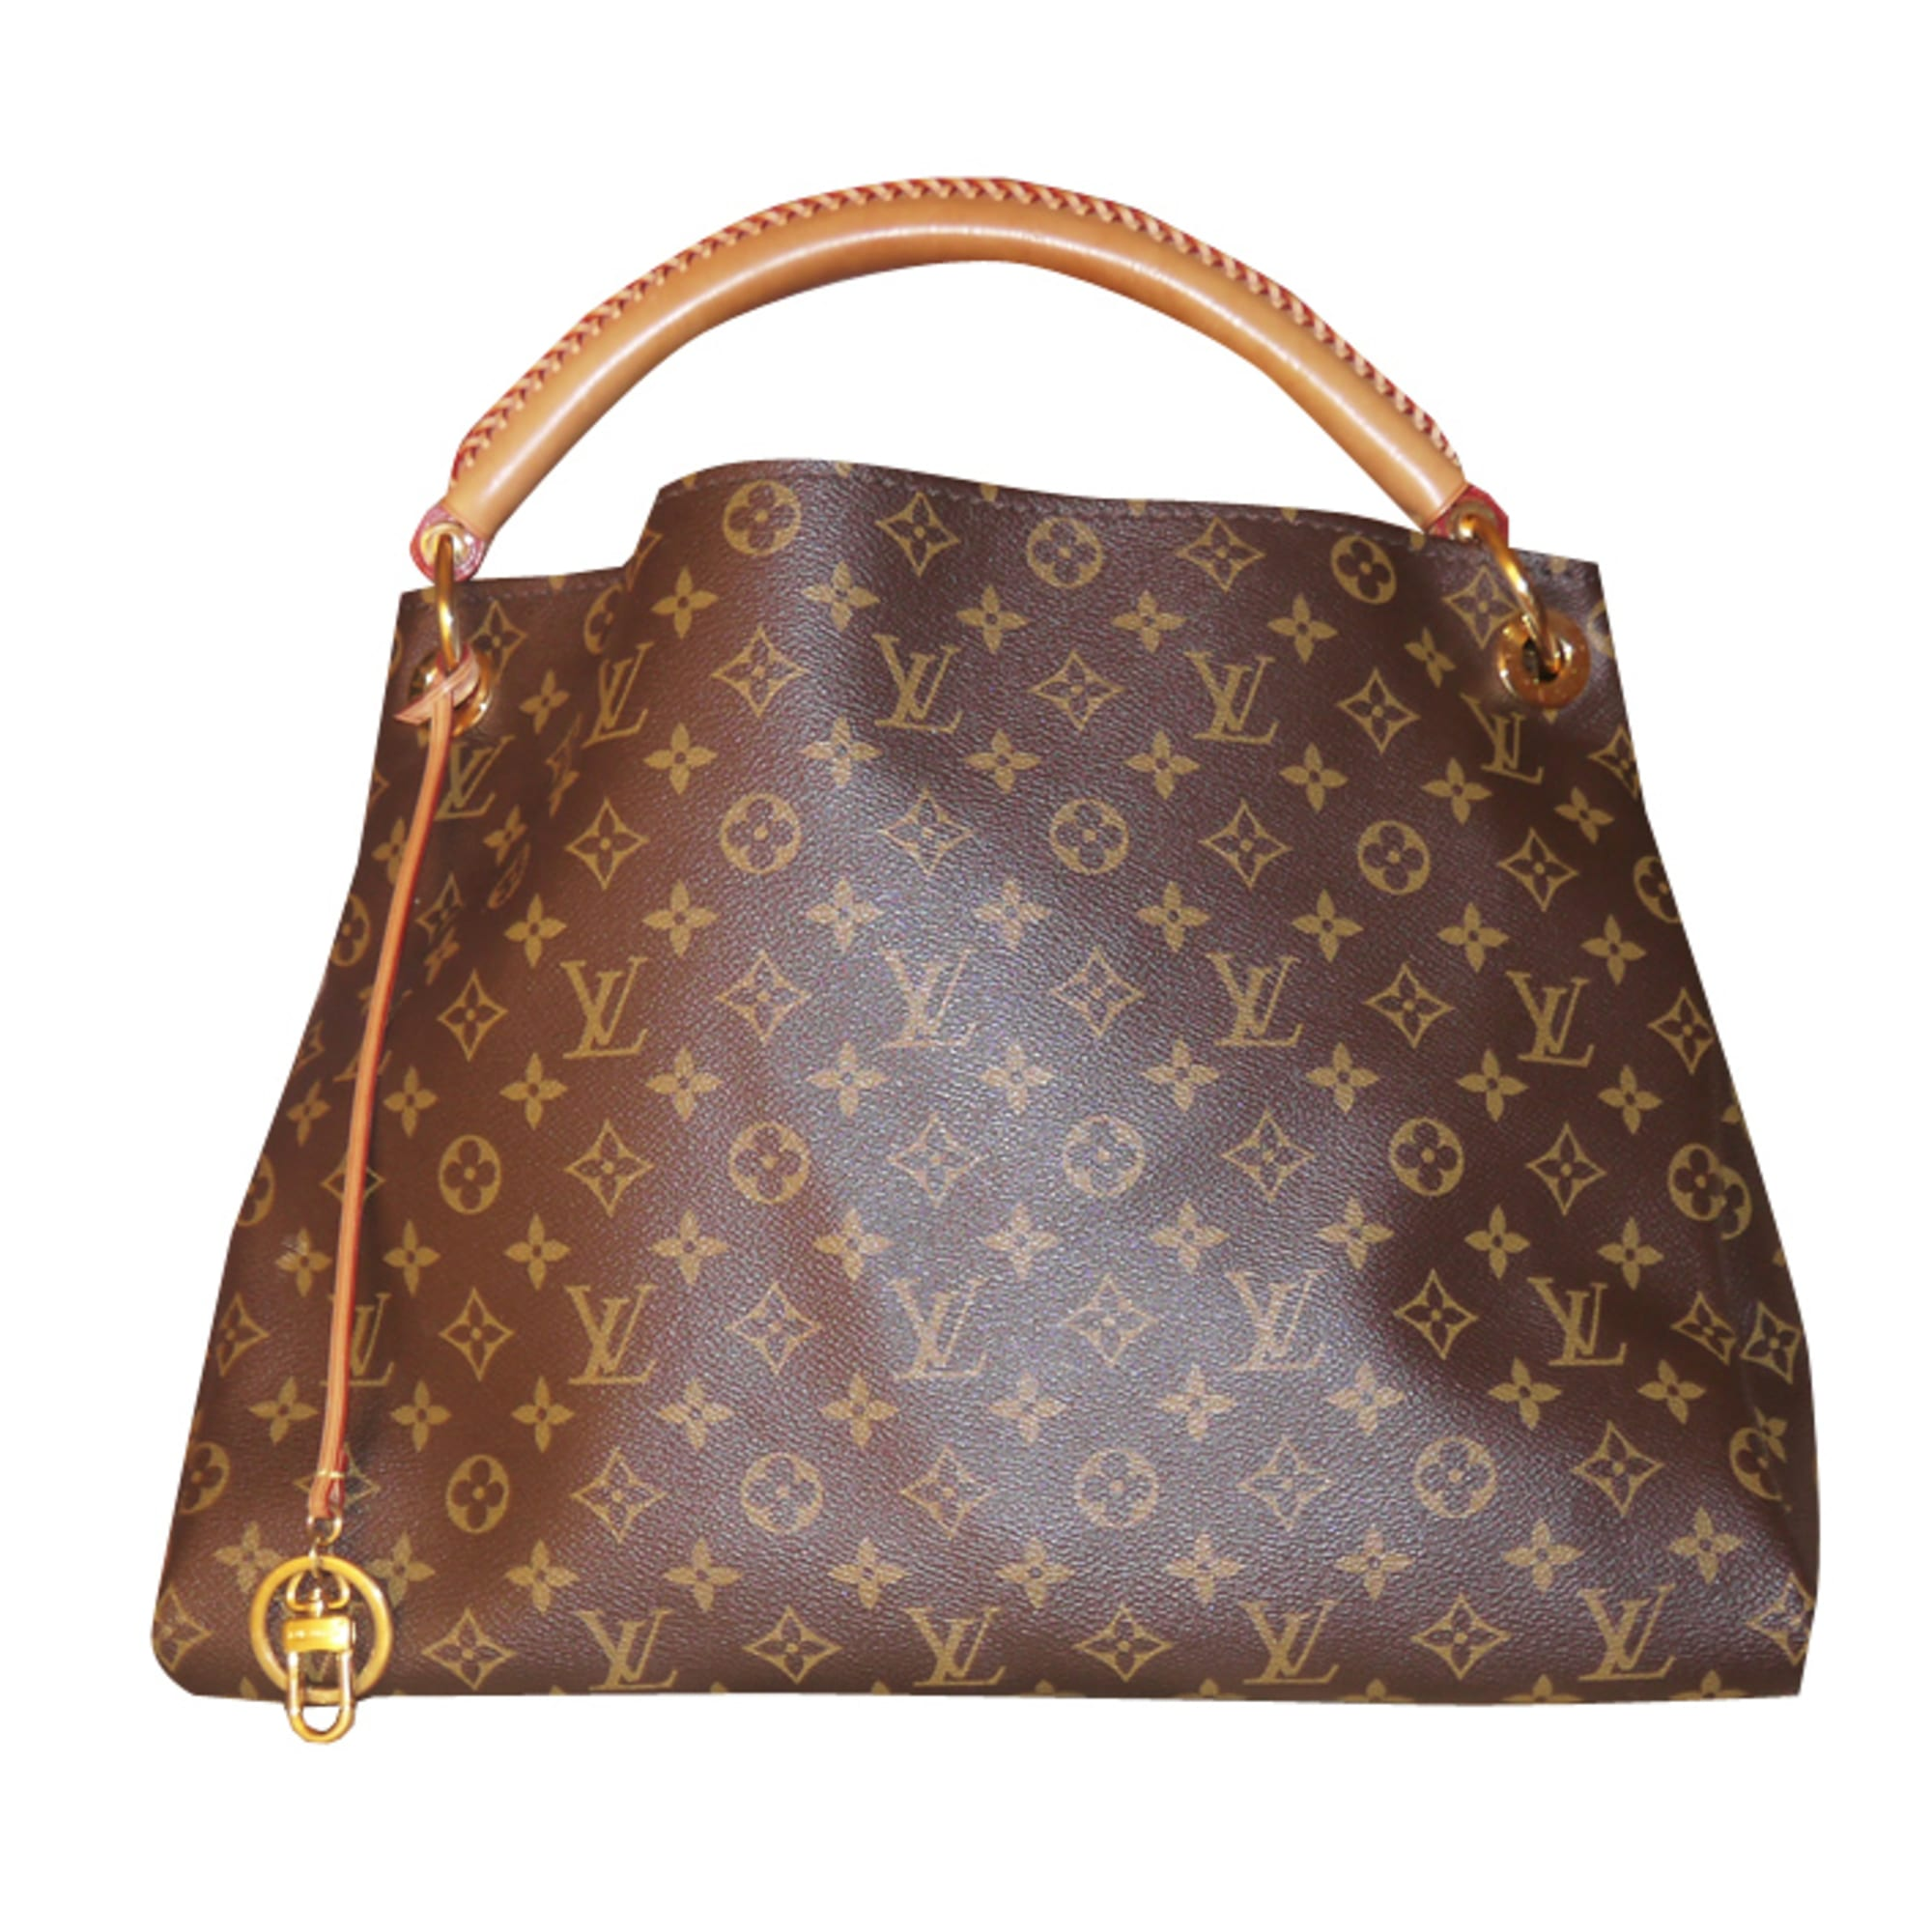 Leather Handbag LOUIS VUITTON monograme lv vendu par Sud157231 - 1069427 e9f9e0317259